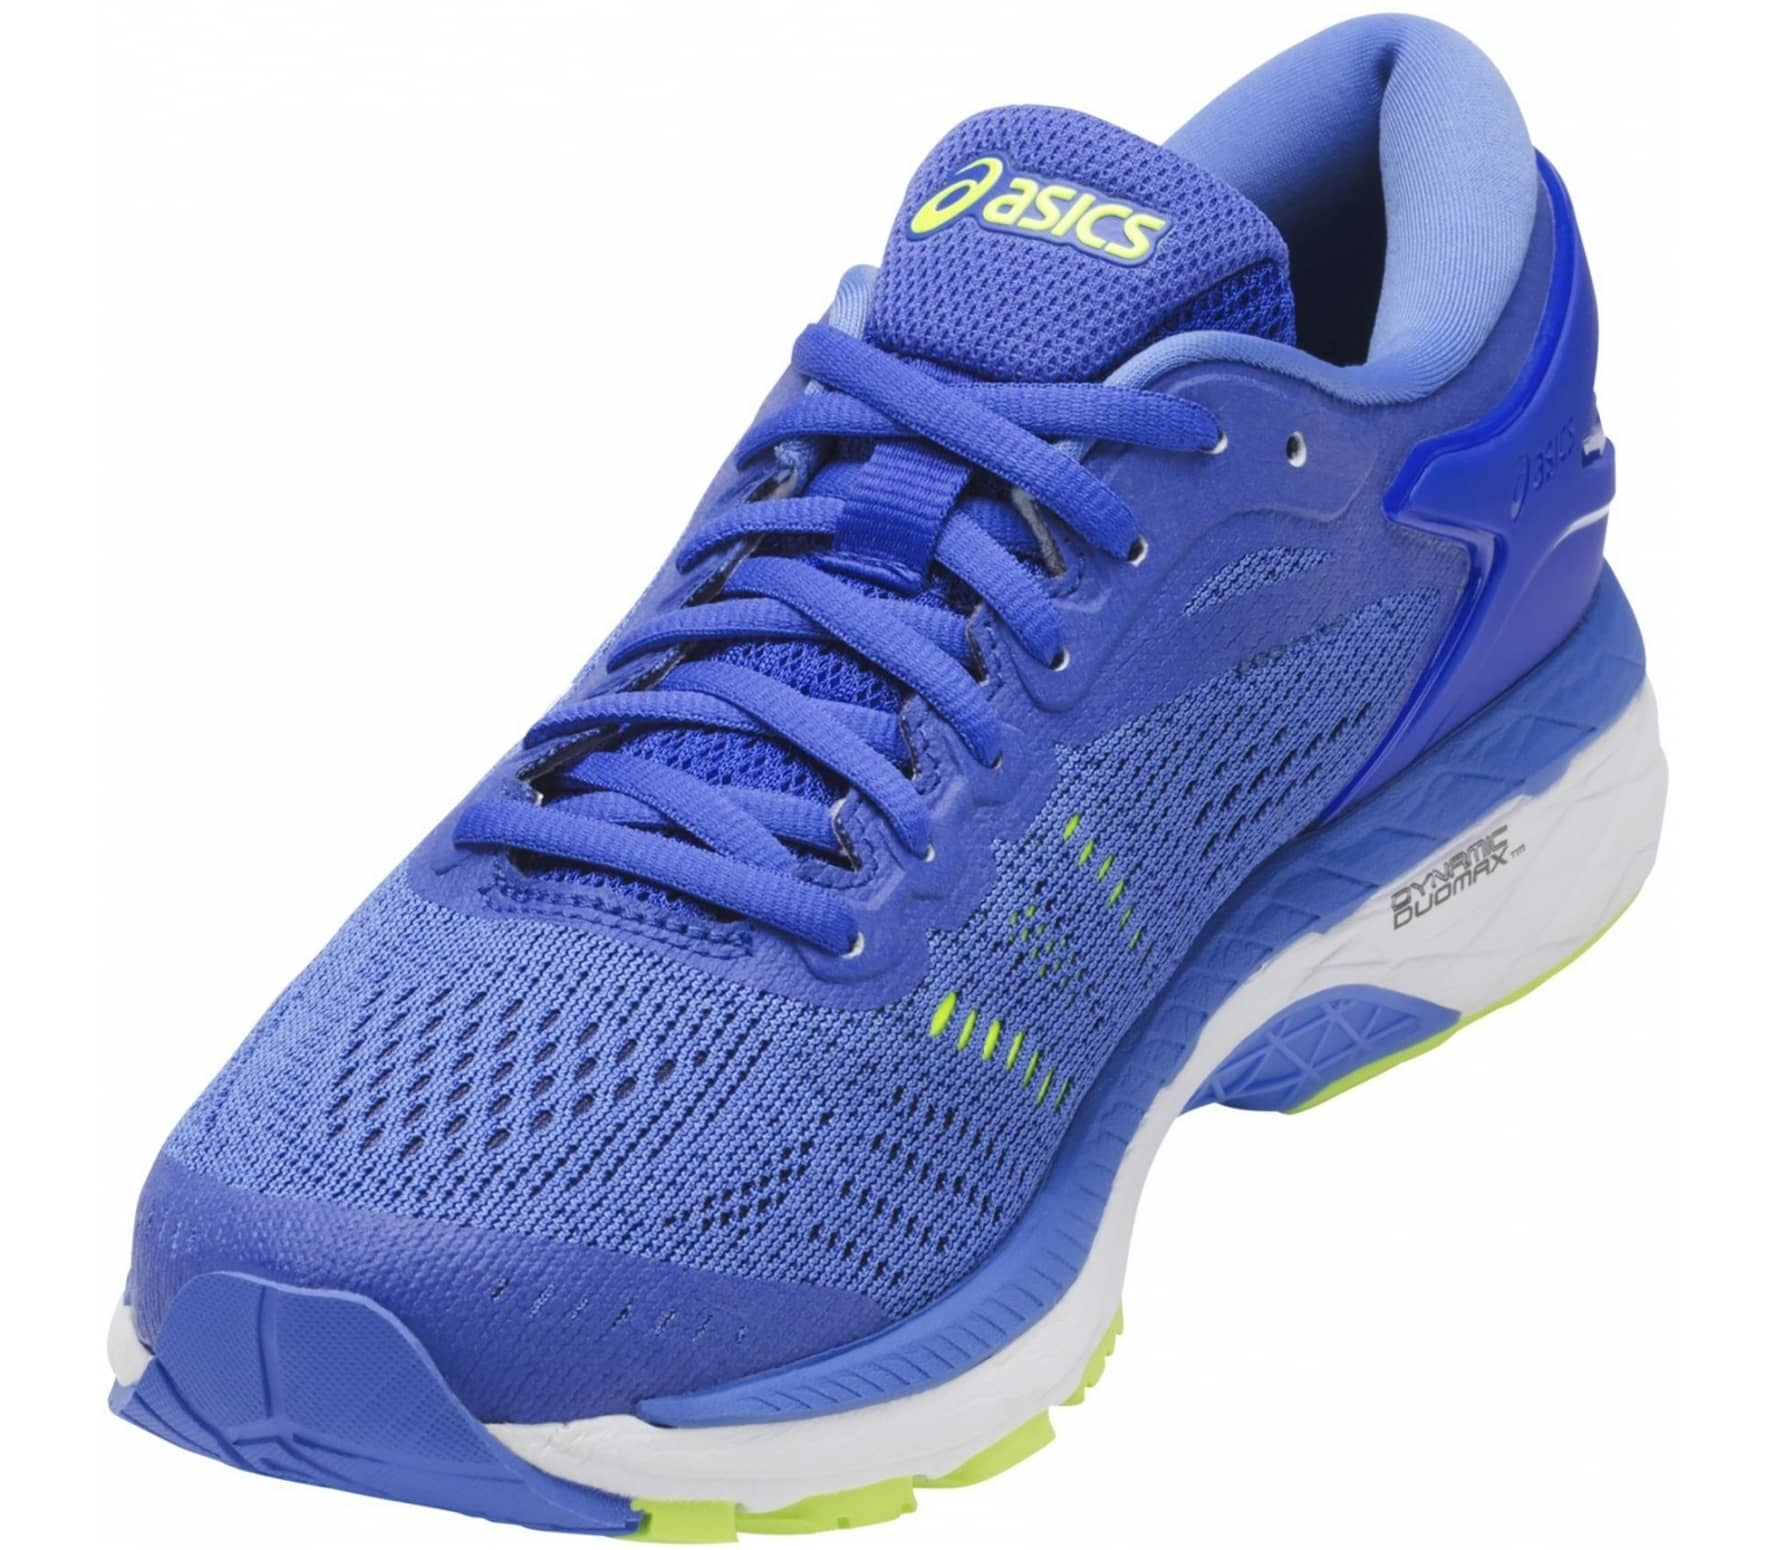 ASICS Gel-Kayano 24 Damen lila